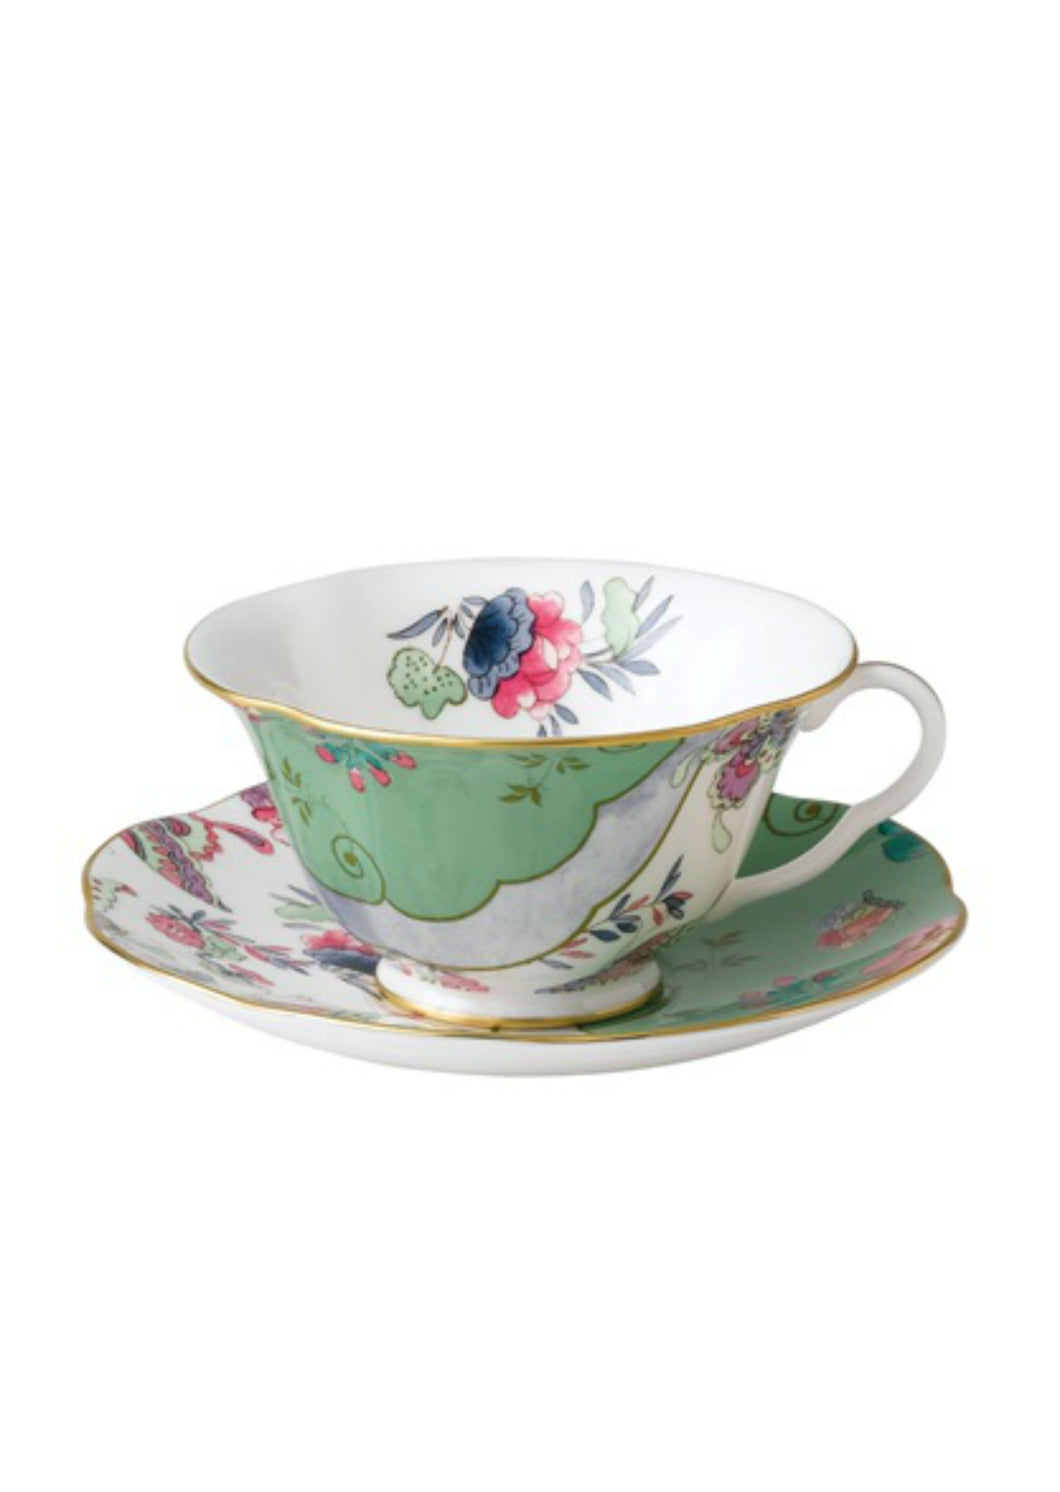 Wedgwood Butterfly Bloom Green Teacup and Saucer